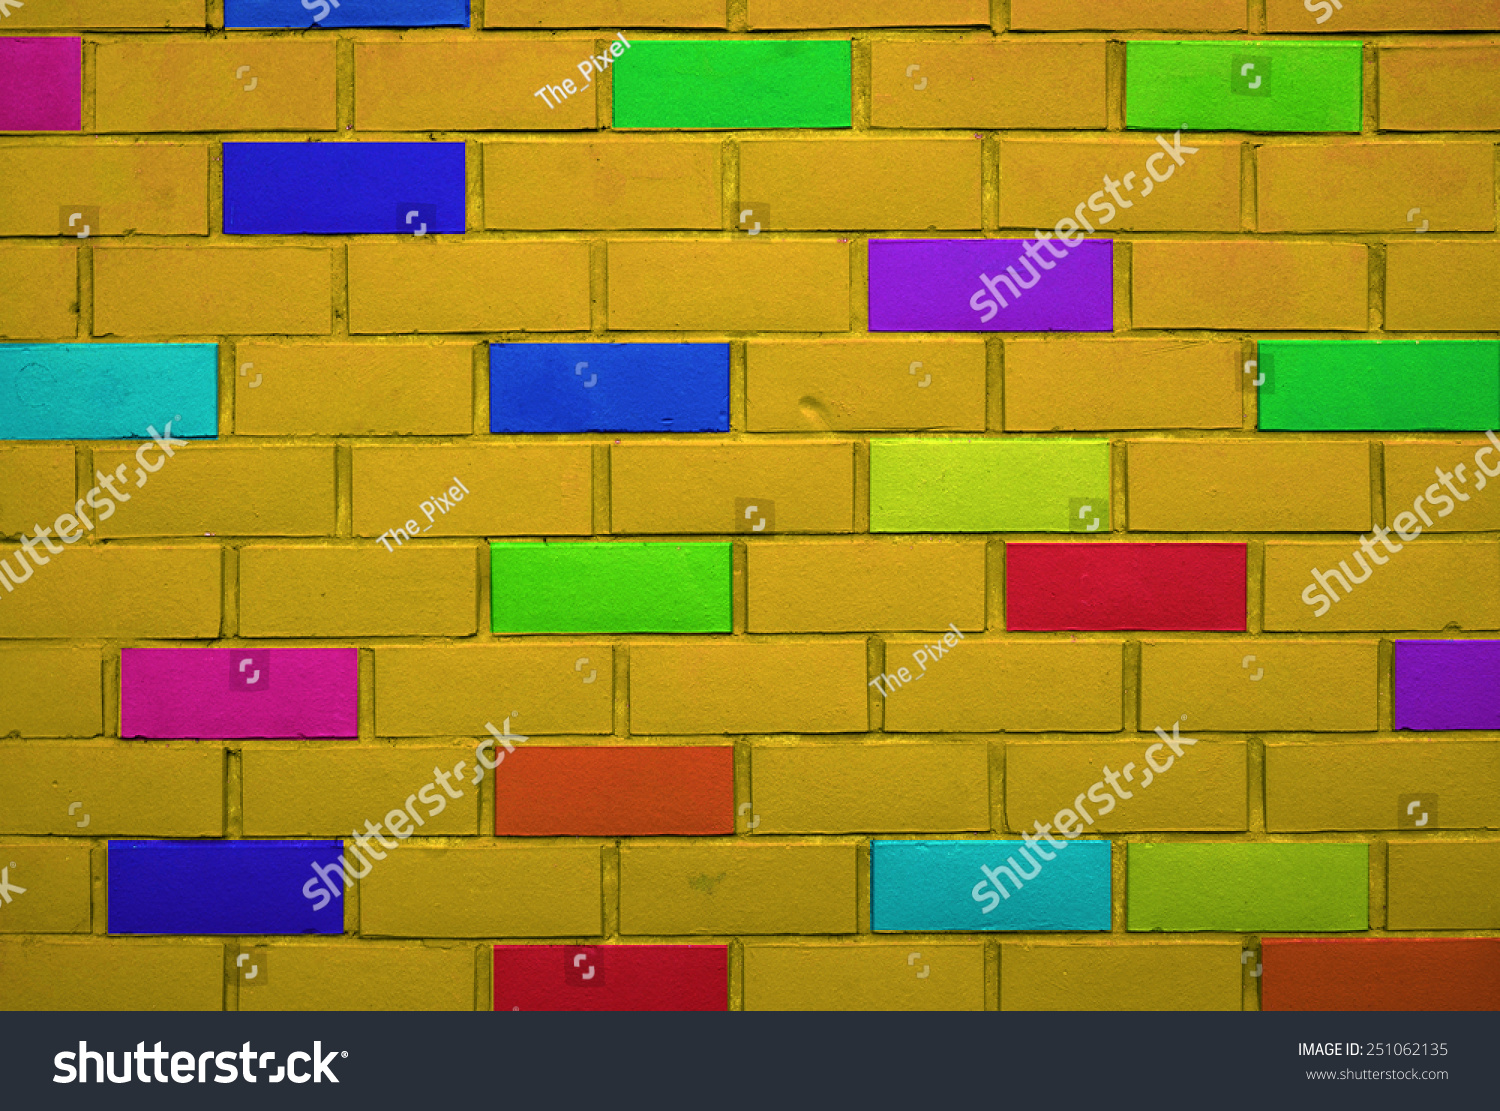 Kids Interior Brick Wall Pattern Gallery Stock Photo (Edit Now ...